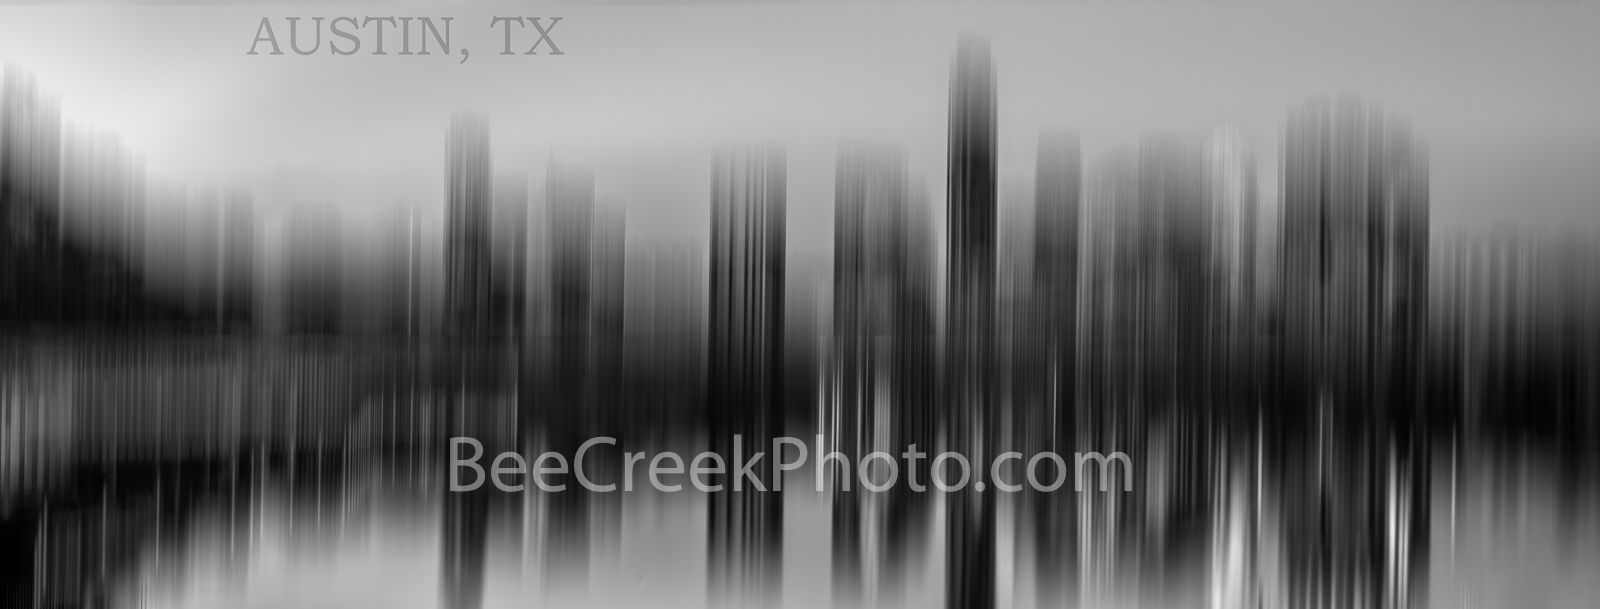 Austin Skyline, Abstract, BW, black and white, Pano, panorama, sureal, modern, contemporary, austin texas,  austin tx, downtown austin, photograph, , photo